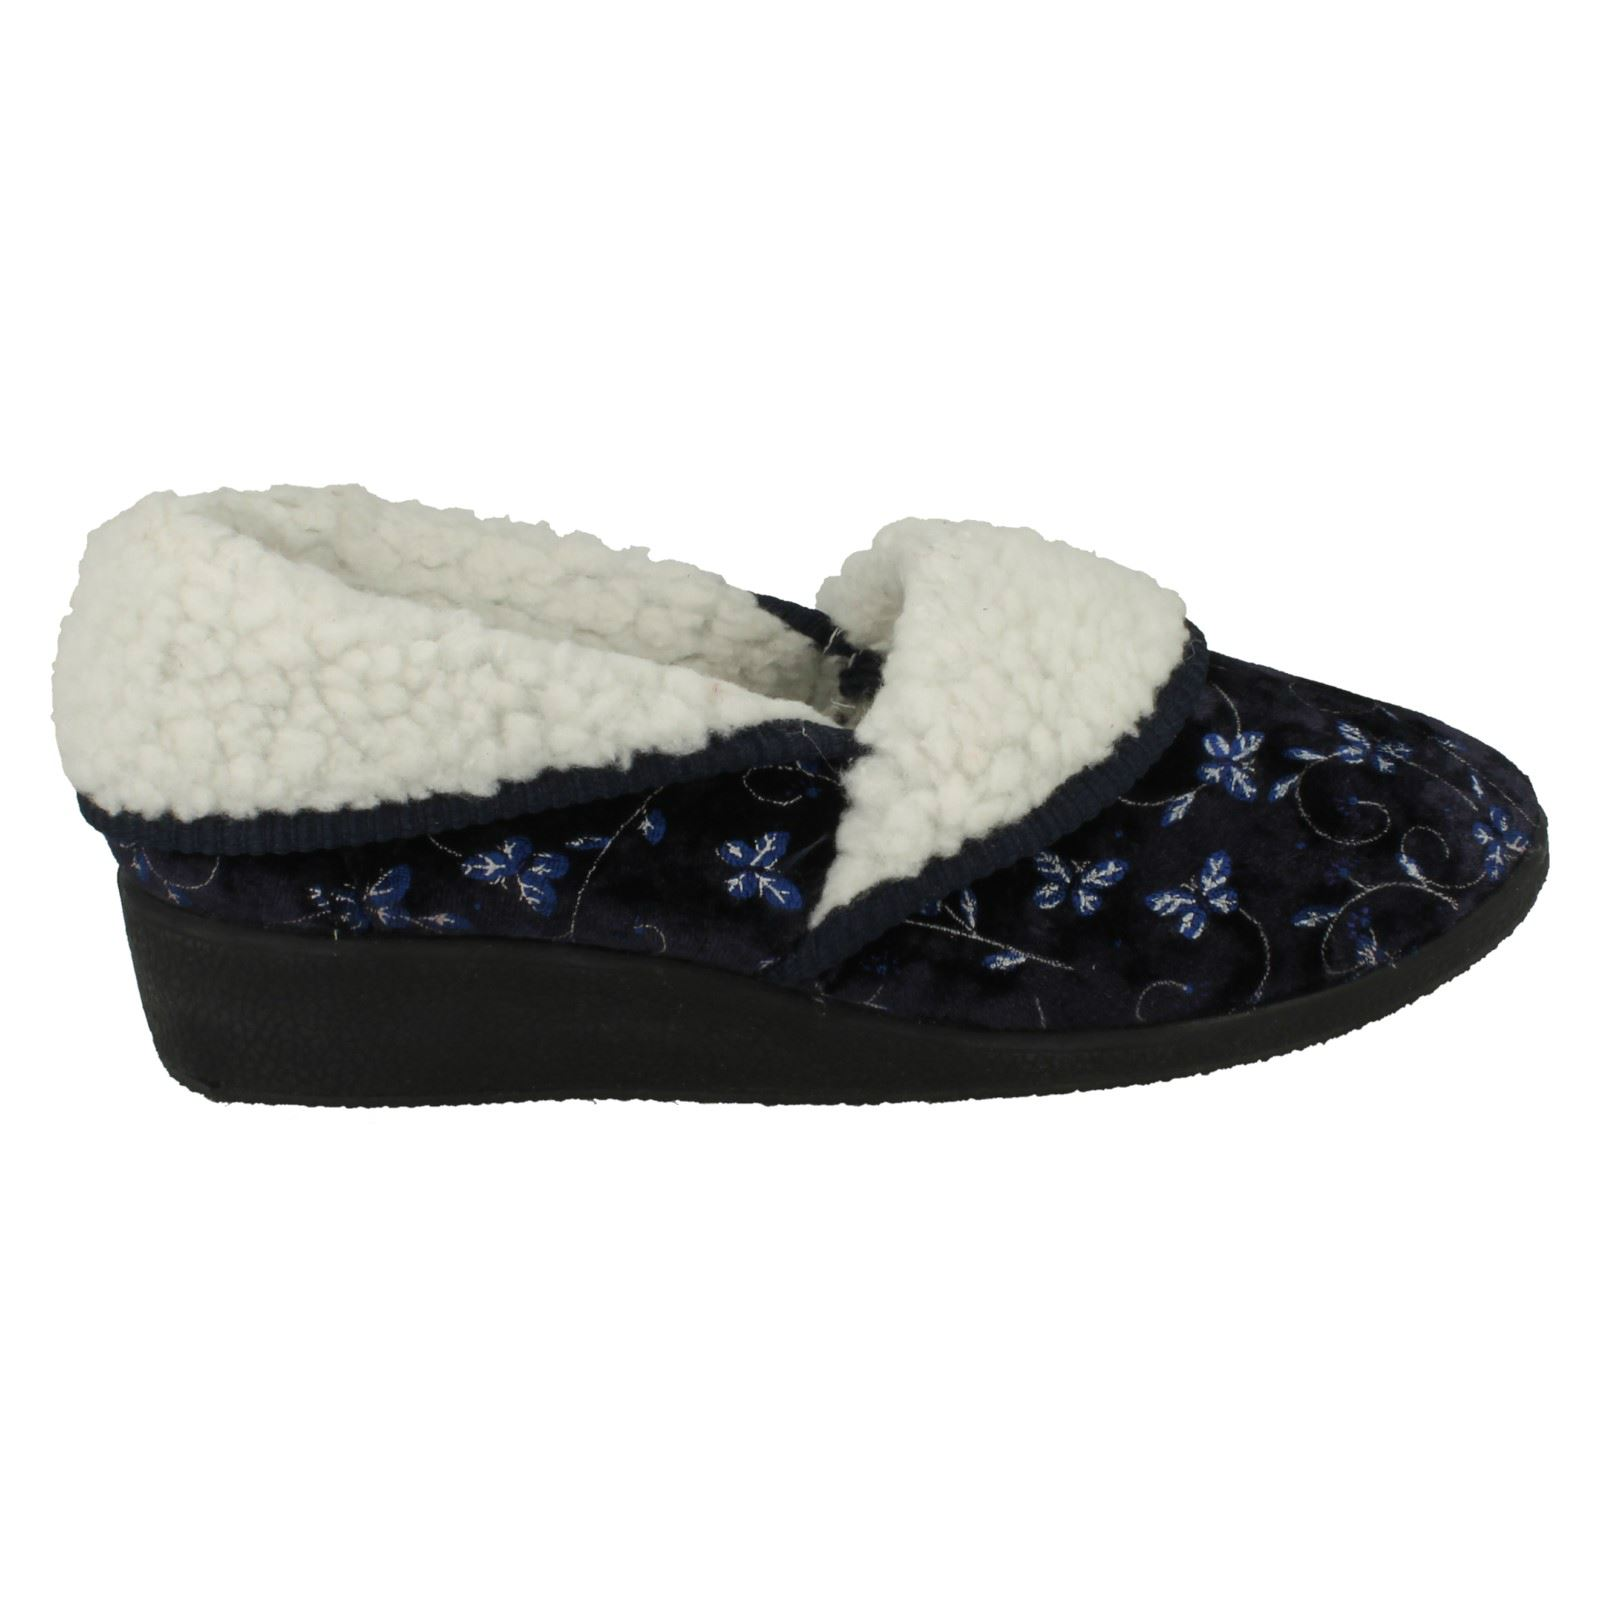 Ladies-Four-Seasons-House-Slippers-Edith thumbnail 15